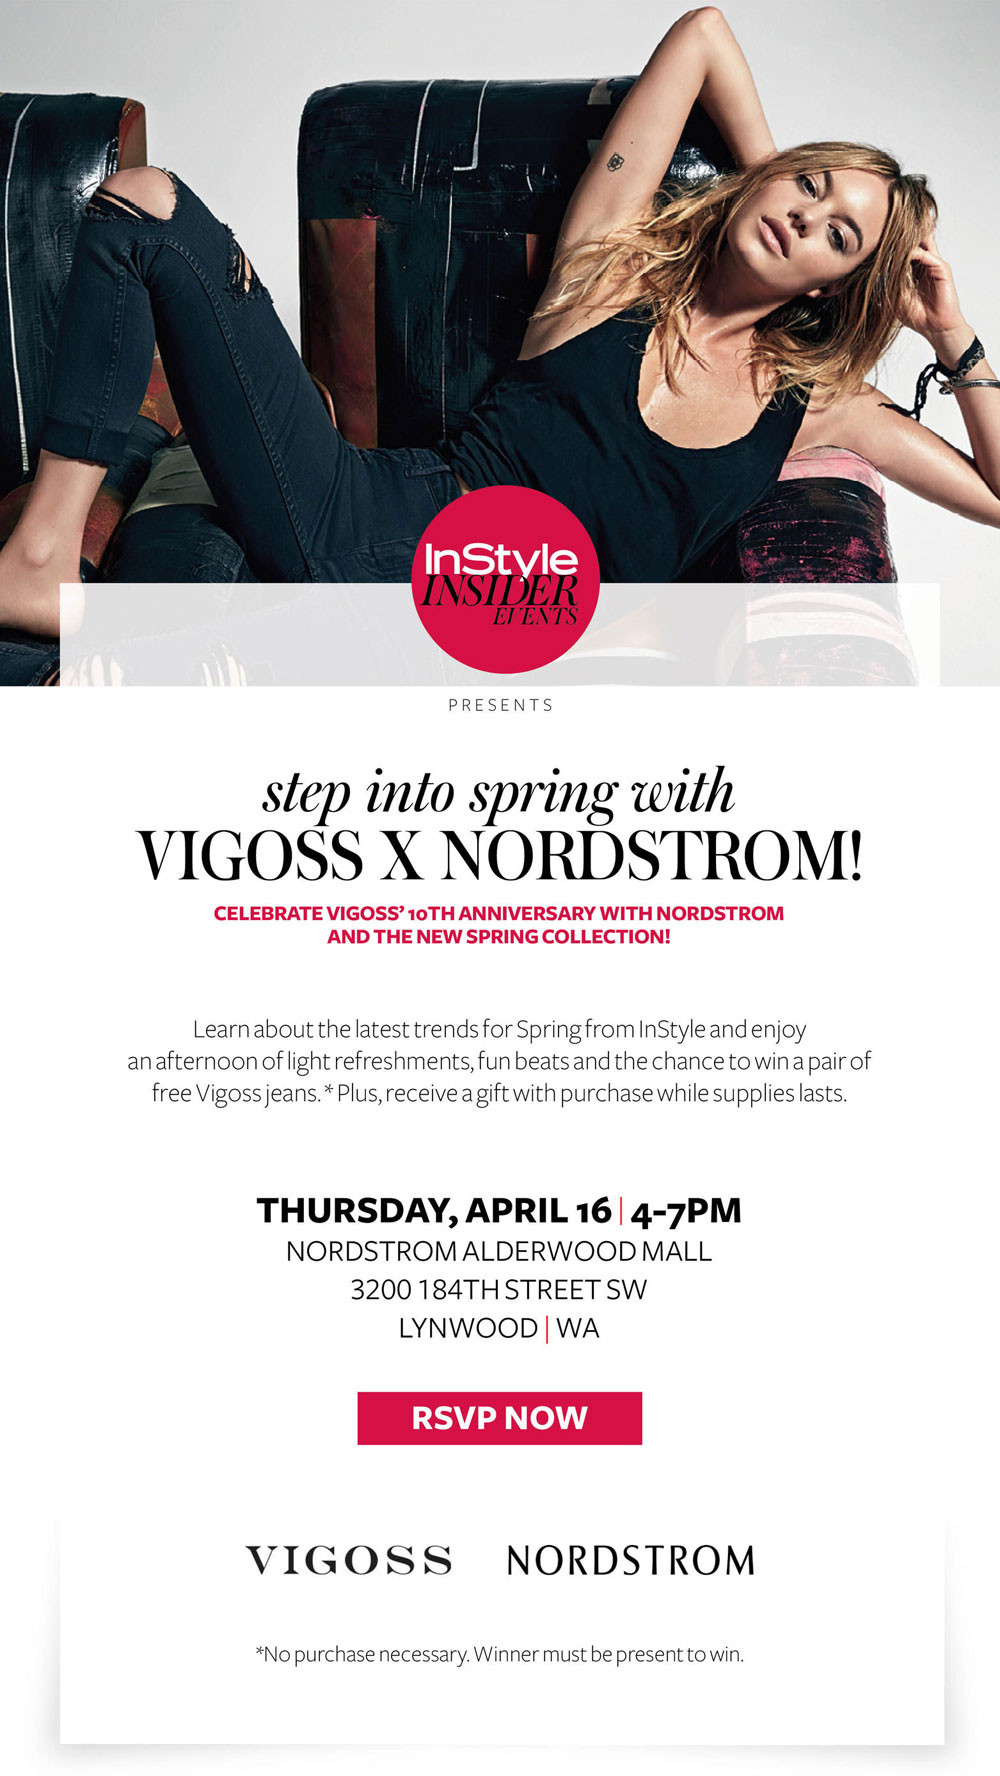 InStyle Insider Nordstrom x Vigoss Jeans Event - April 16th at Alderwood Mall in Lynnwood, WA / hellorigby seattle fashion blog